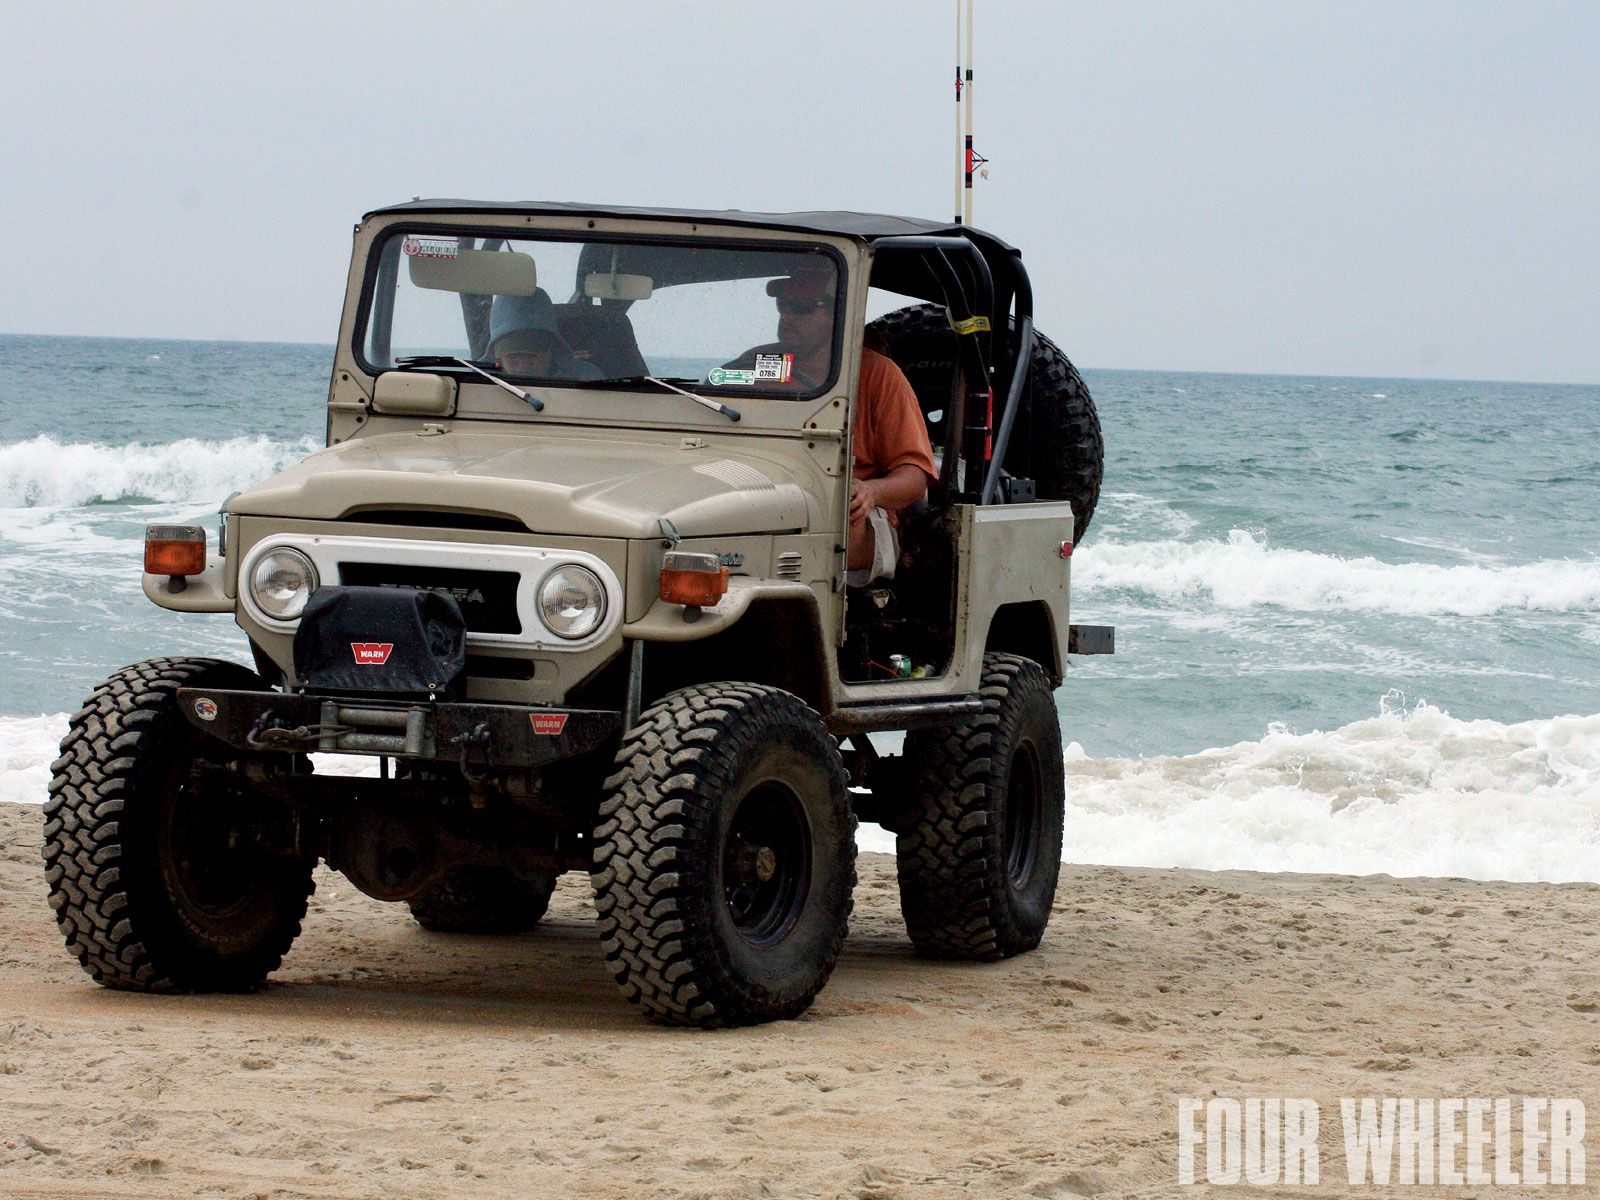 View 129 1101 08 1101 spring tide toyota front shot photo 35261514 from spring tide ride find this pin and more on toyota landcruiser fj40